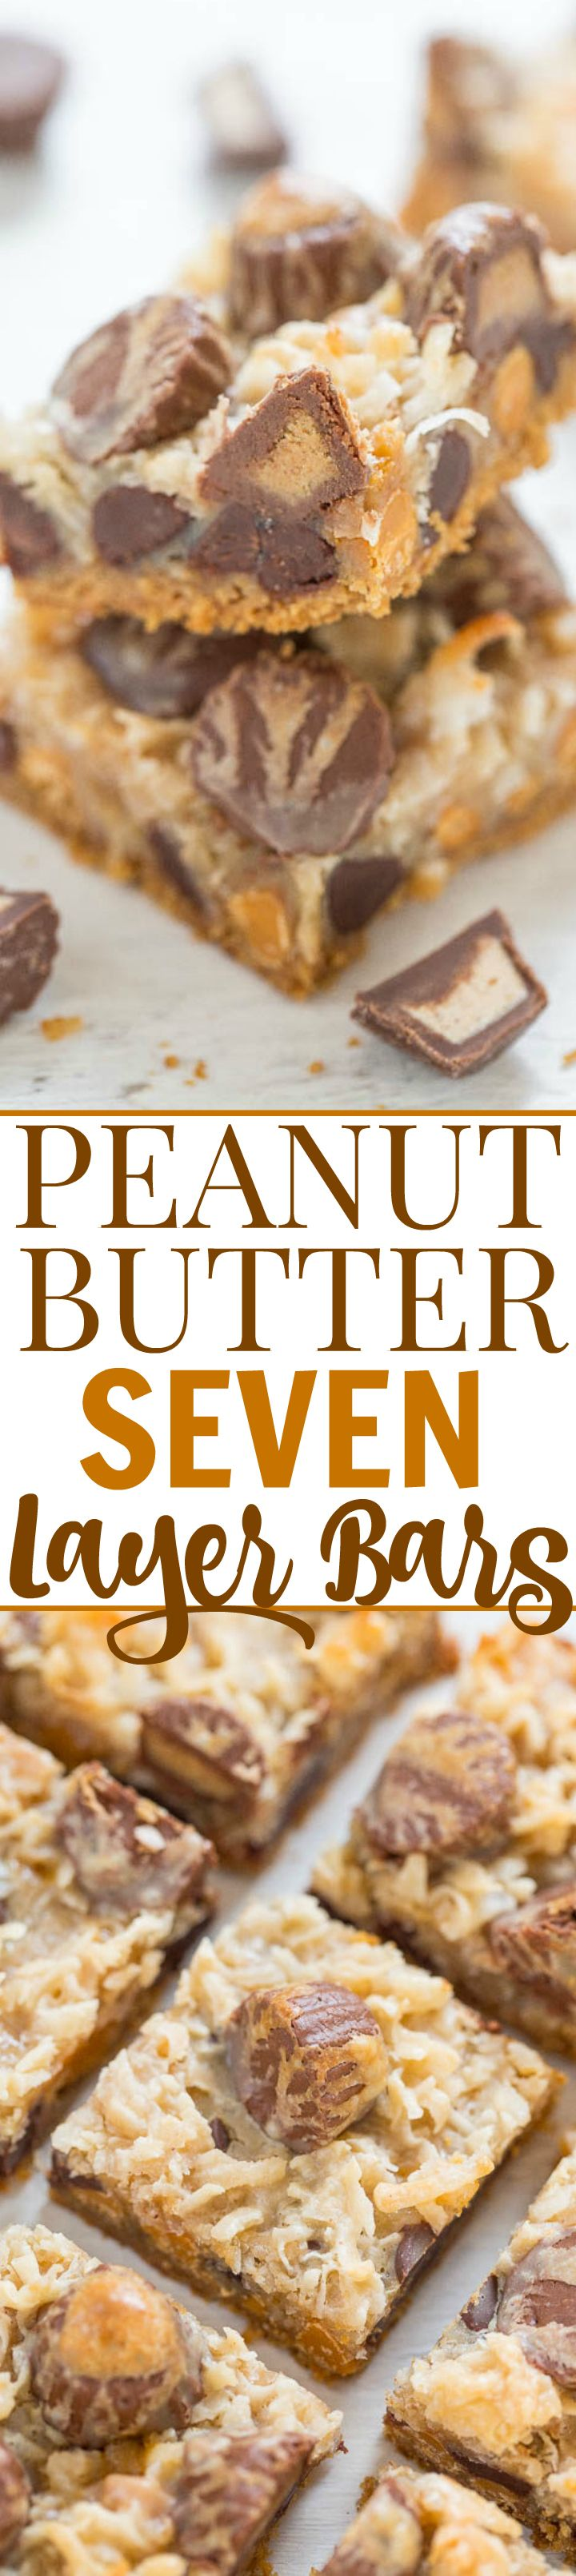 Peanut Butter Seven Layer Bars - There's peanut butter, peanut butter chips AND peanut butter cups in this fun twist on the classic recipe!! EASY no-mixer recipe that peanut butter fans will LOVE!!